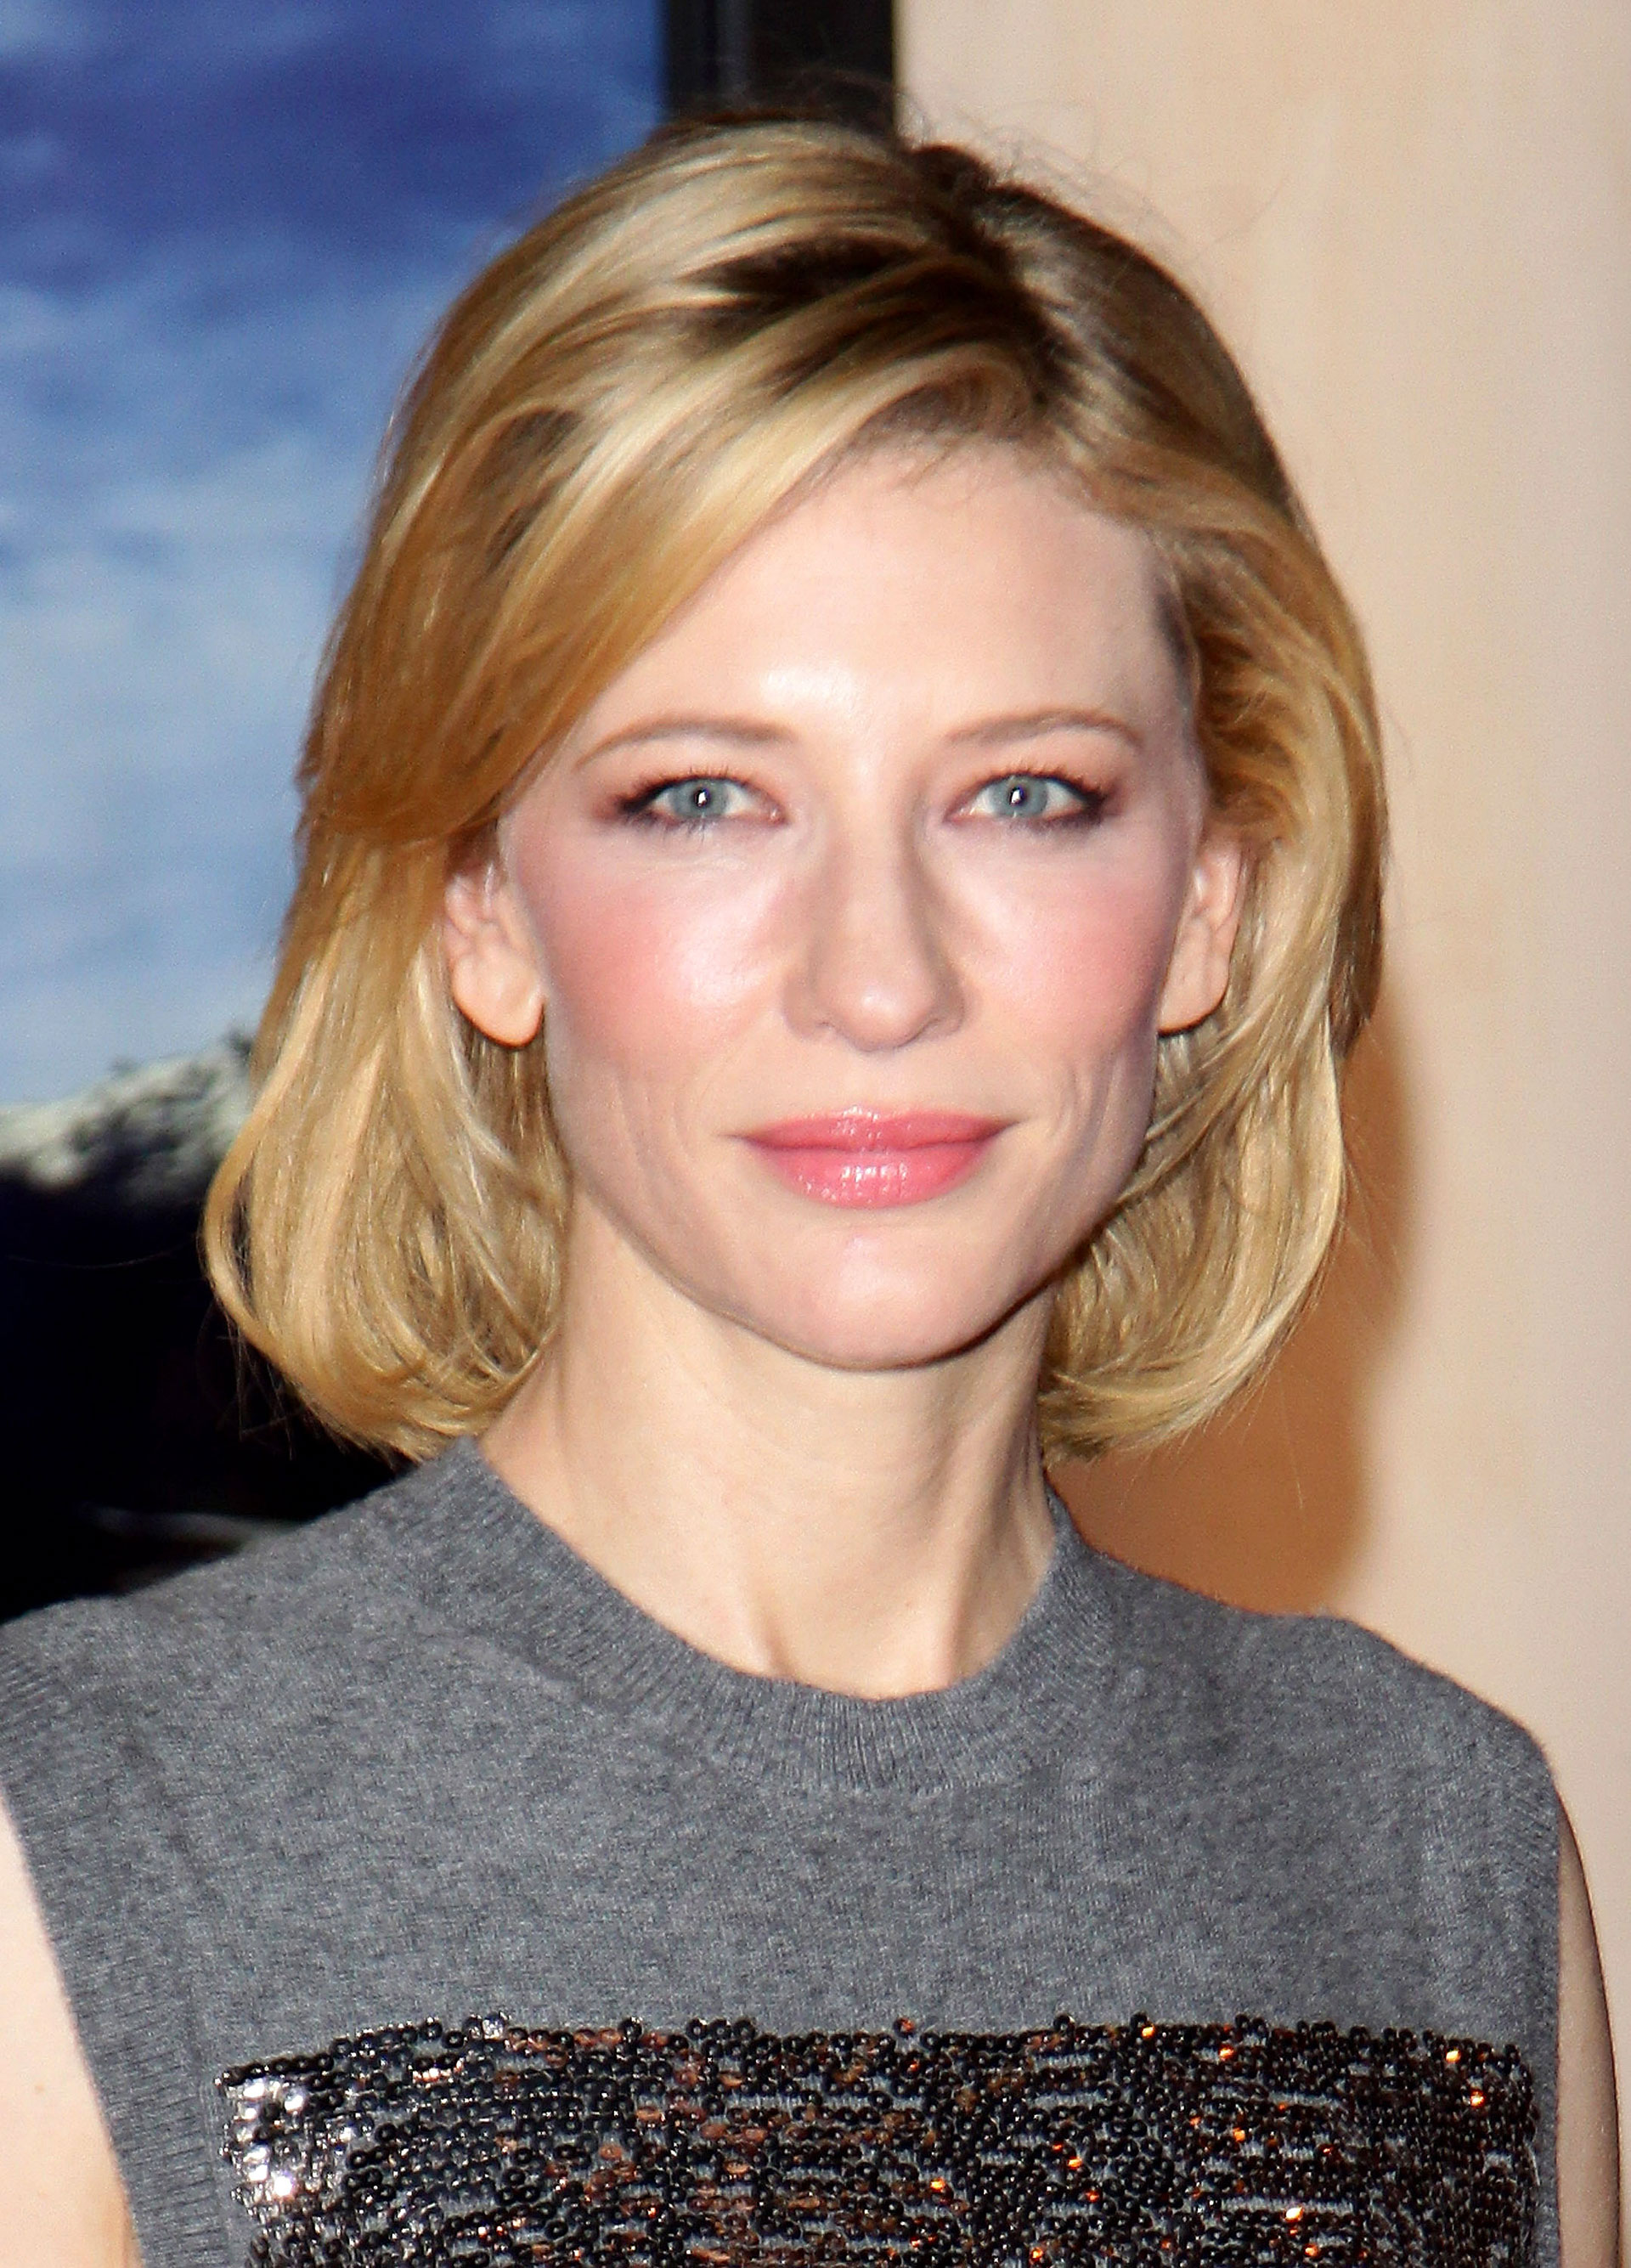 Surprising 12 Best Hairstyles Over 40 Celeb Hair Over 40 Hairstyles For Women Draintrainus